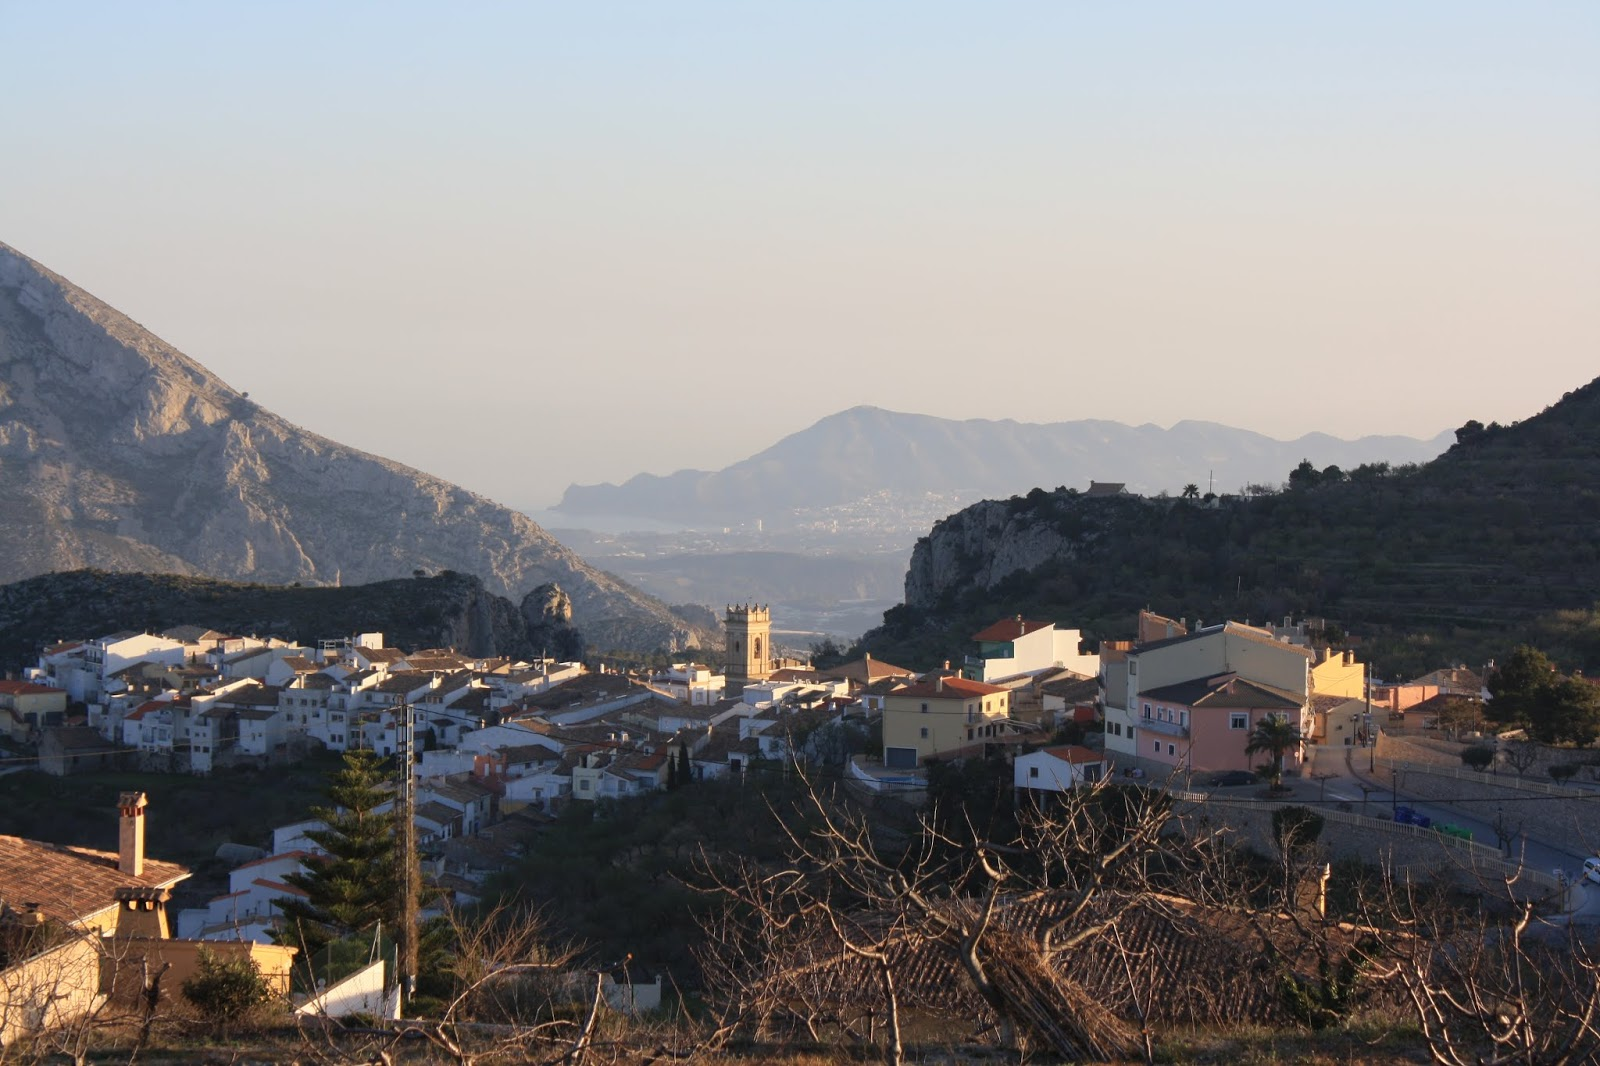 Village of Tàrbena in la Marina Alta Alicante